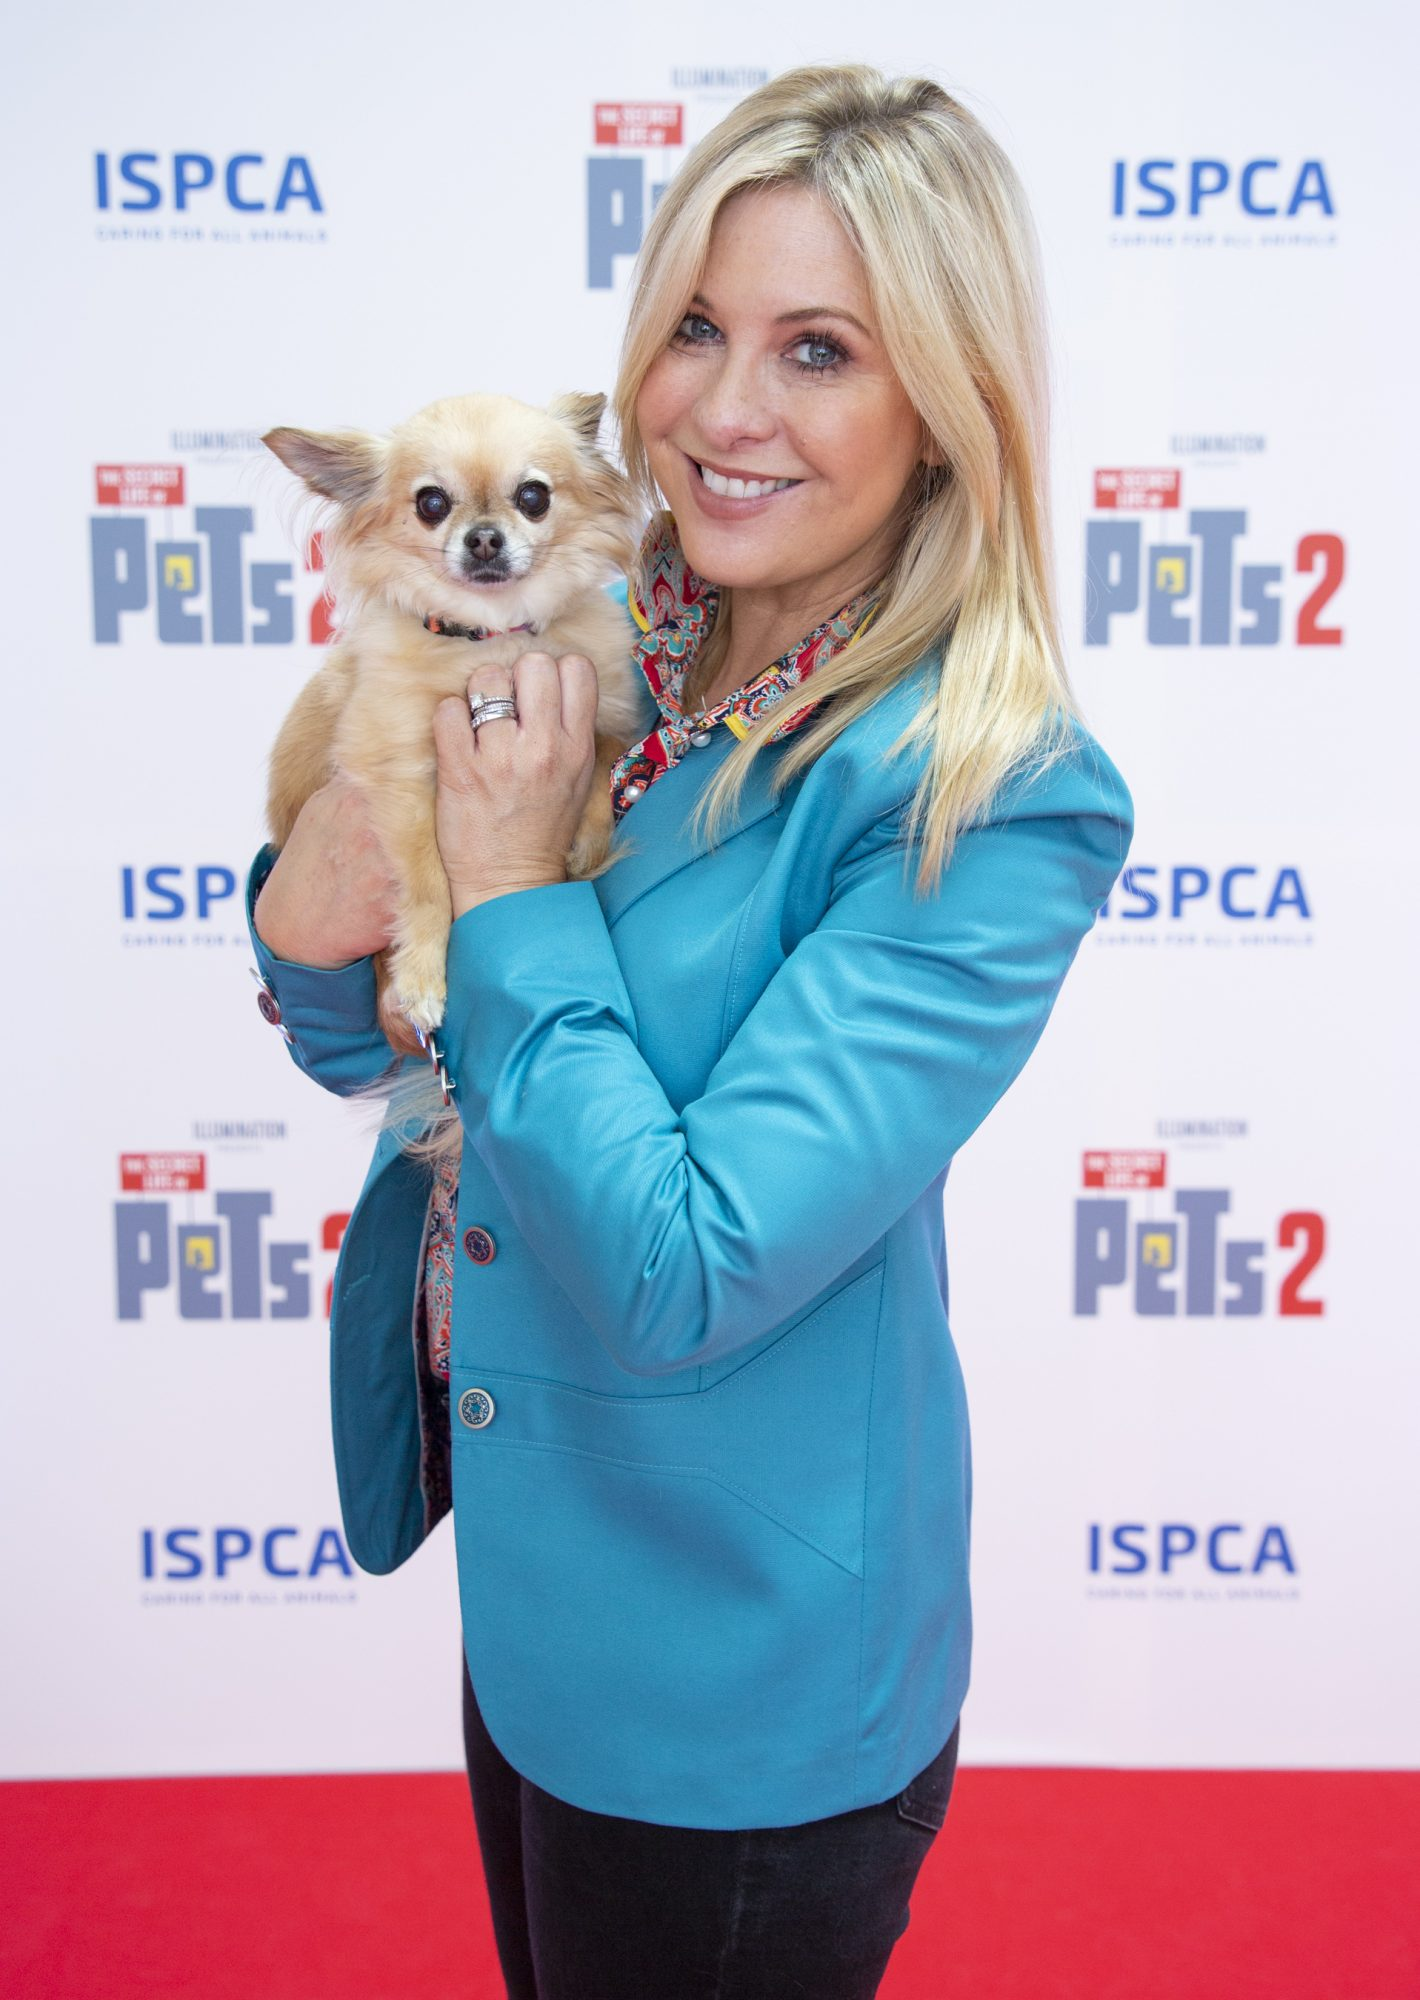 Laura Woods & Minnie the dog pictured at the Irish premiere screening of The Secret Life of Pets 2 at Odeon Point Square, Dublin hosted by Universal Pictures in association with the ISPCA. The Secret Life of Pets 2 is in cinemas from Friday May 24th. Photo: Anthony Woods